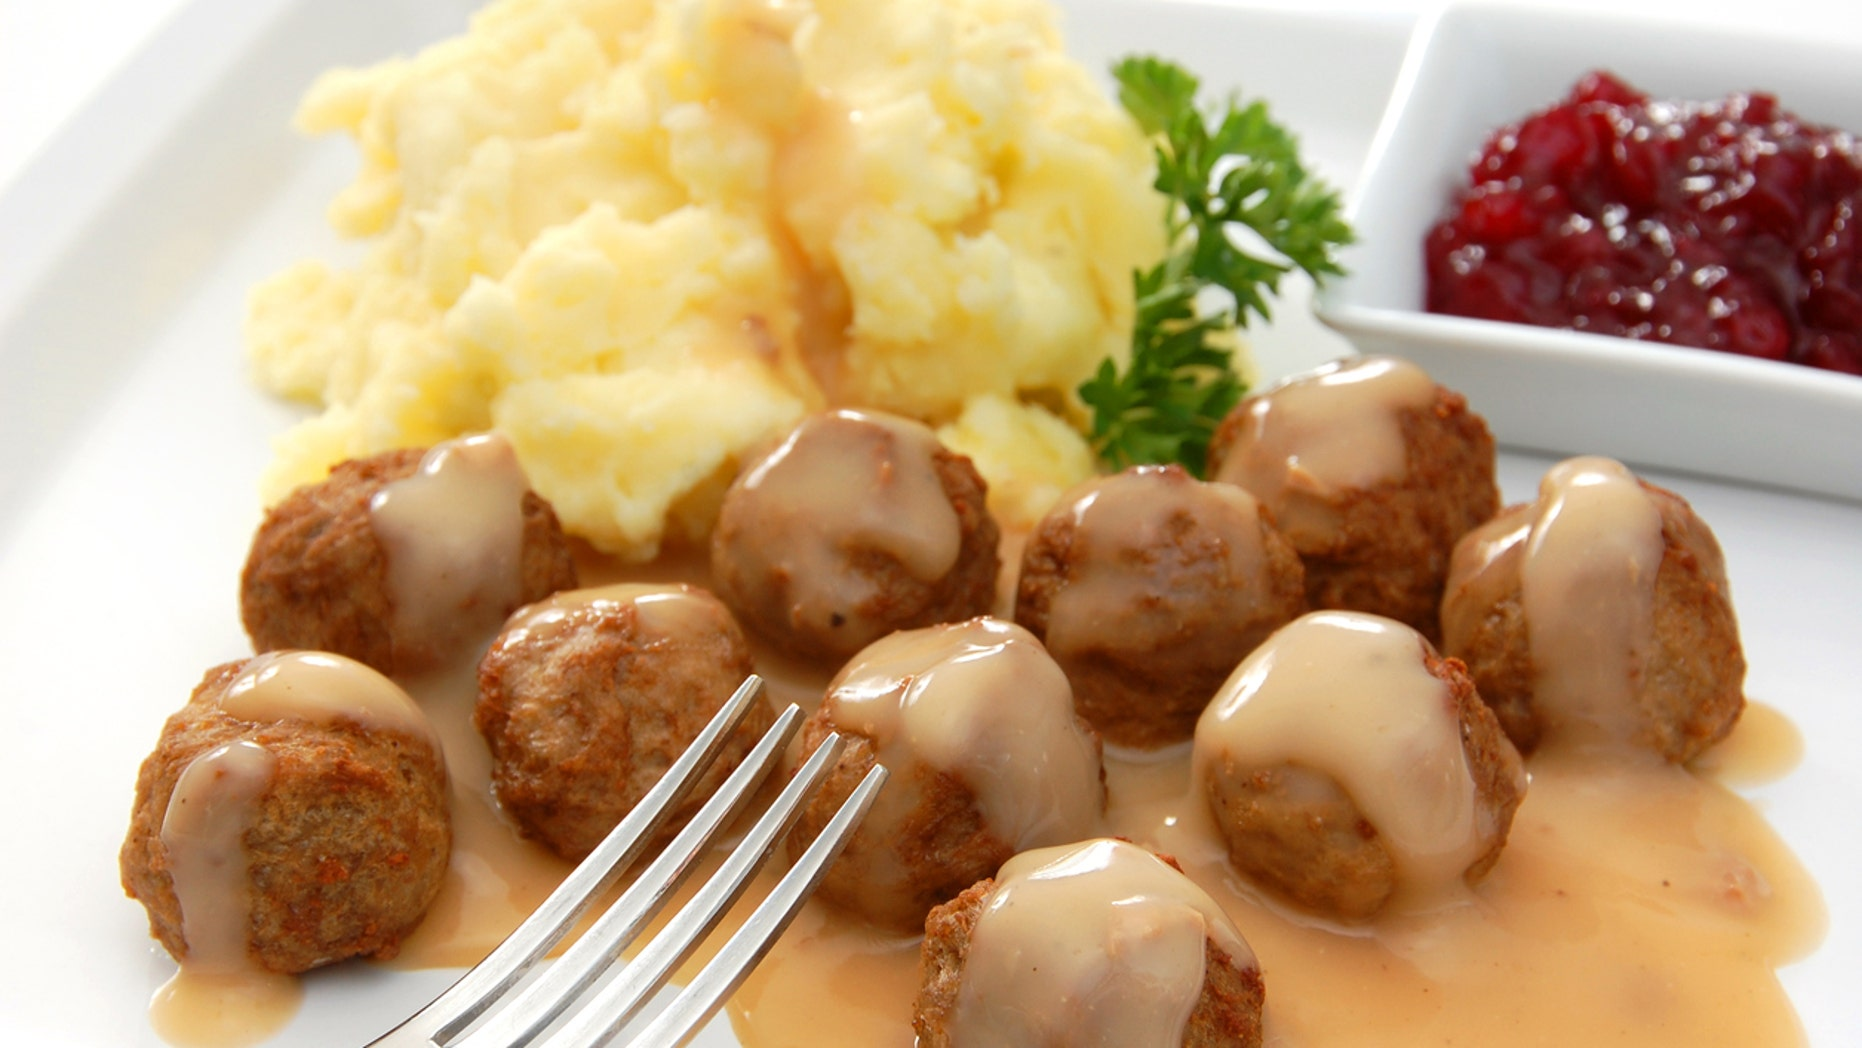 """""""Swedish meatballs served with the traditional accompaniments of gravy, mashed potatoes, and lingonberry sauce.More images from this series:"""""""